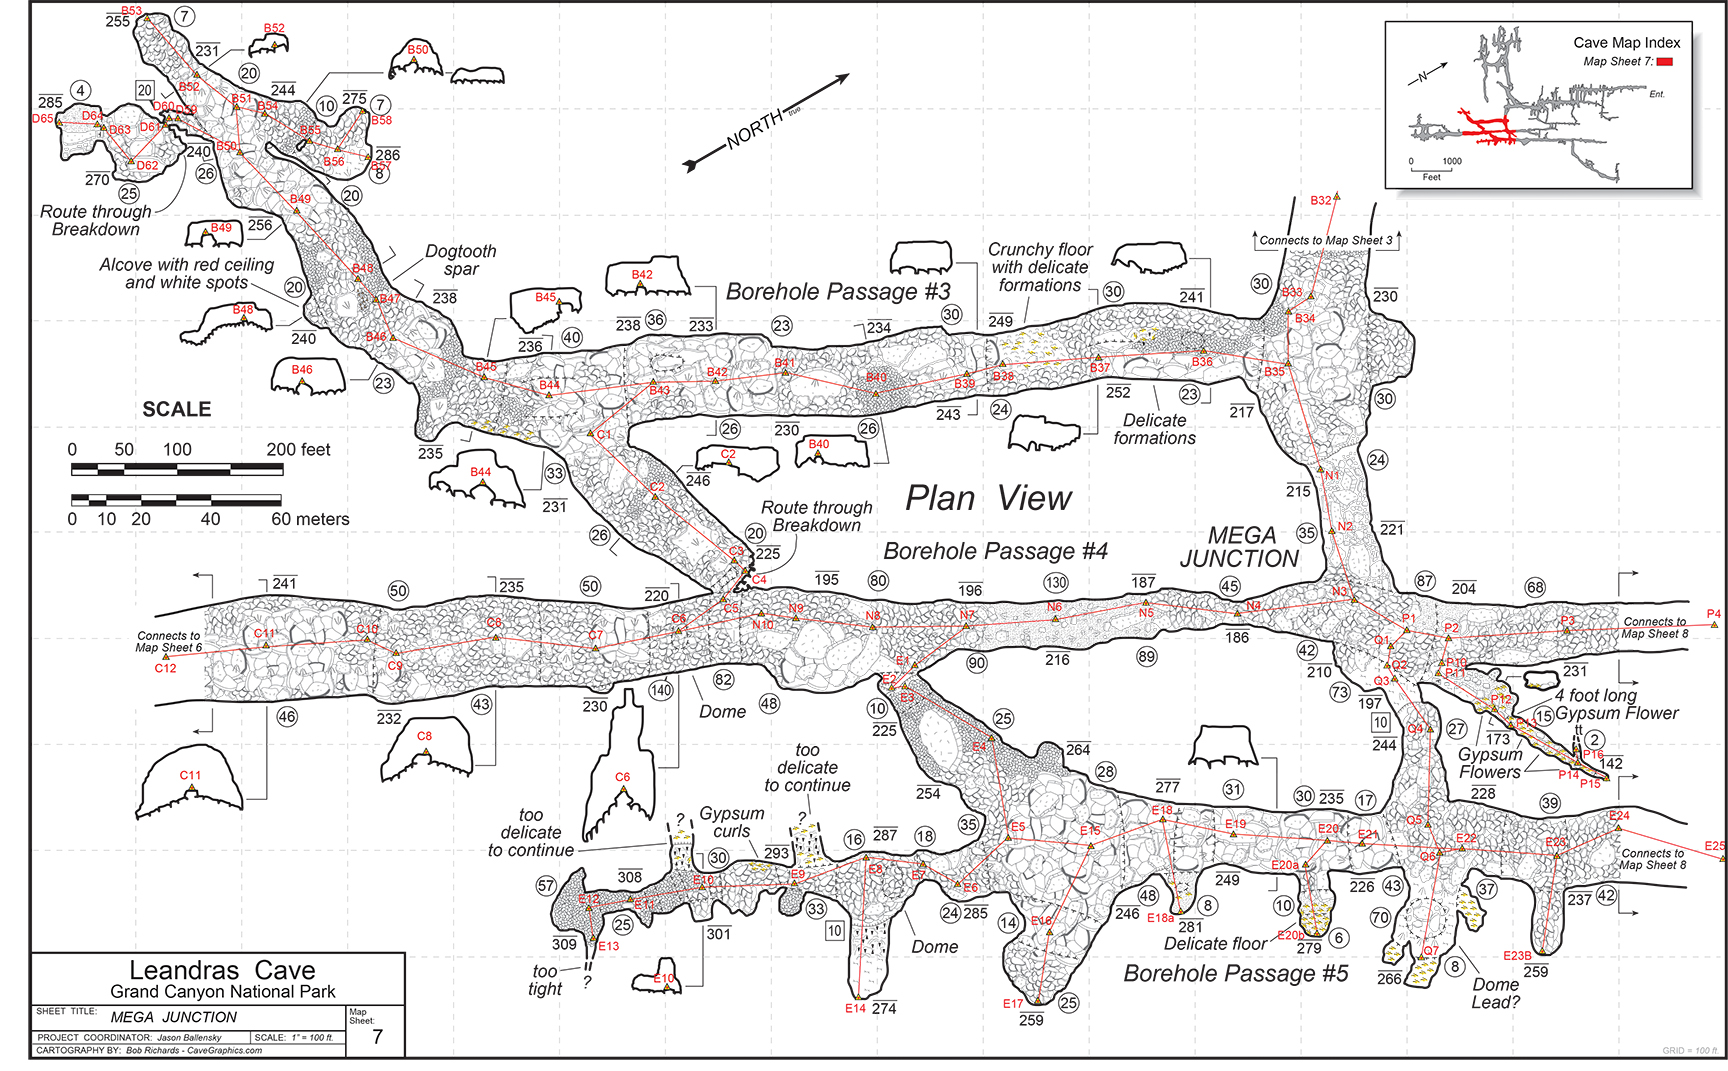 A finished map section of Leandra's Cave, drafted by Dolores resident, Bob Richards. His detailed cartography is highly sought after for large, complicated cave survey projects.